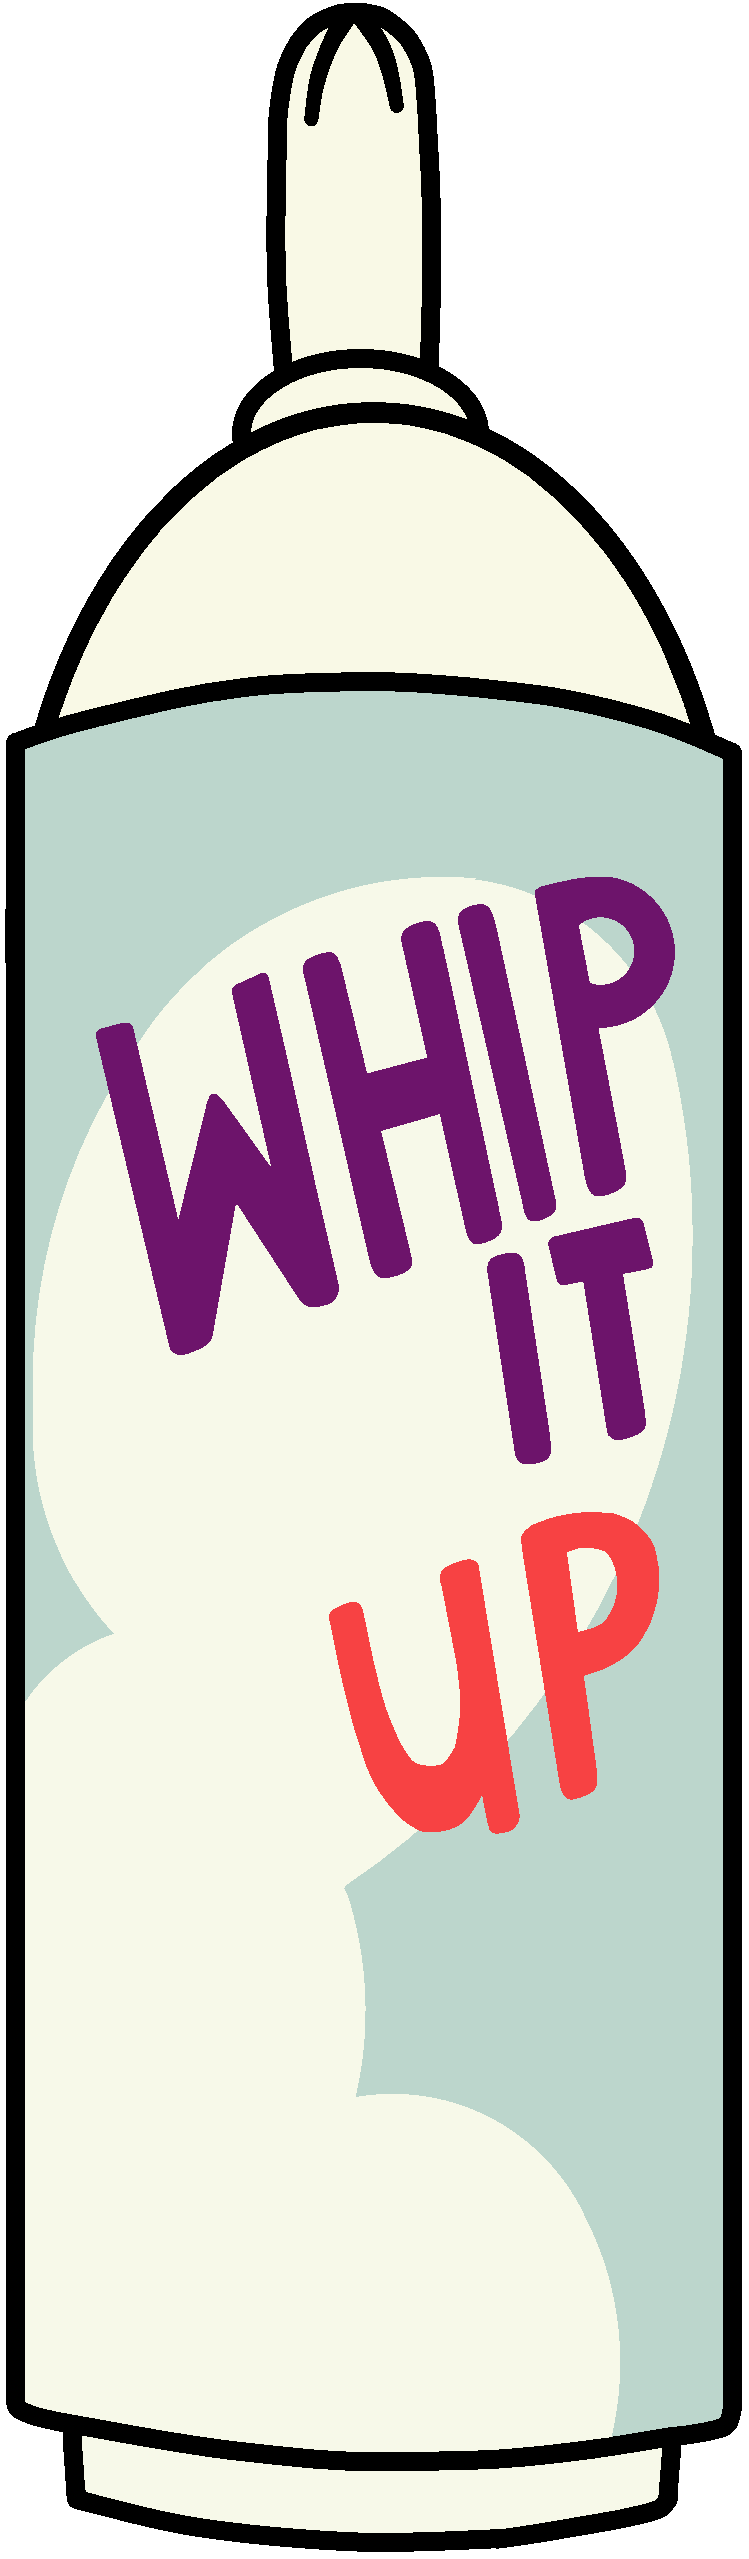 Minor objects food steven. Whip clipart whipped